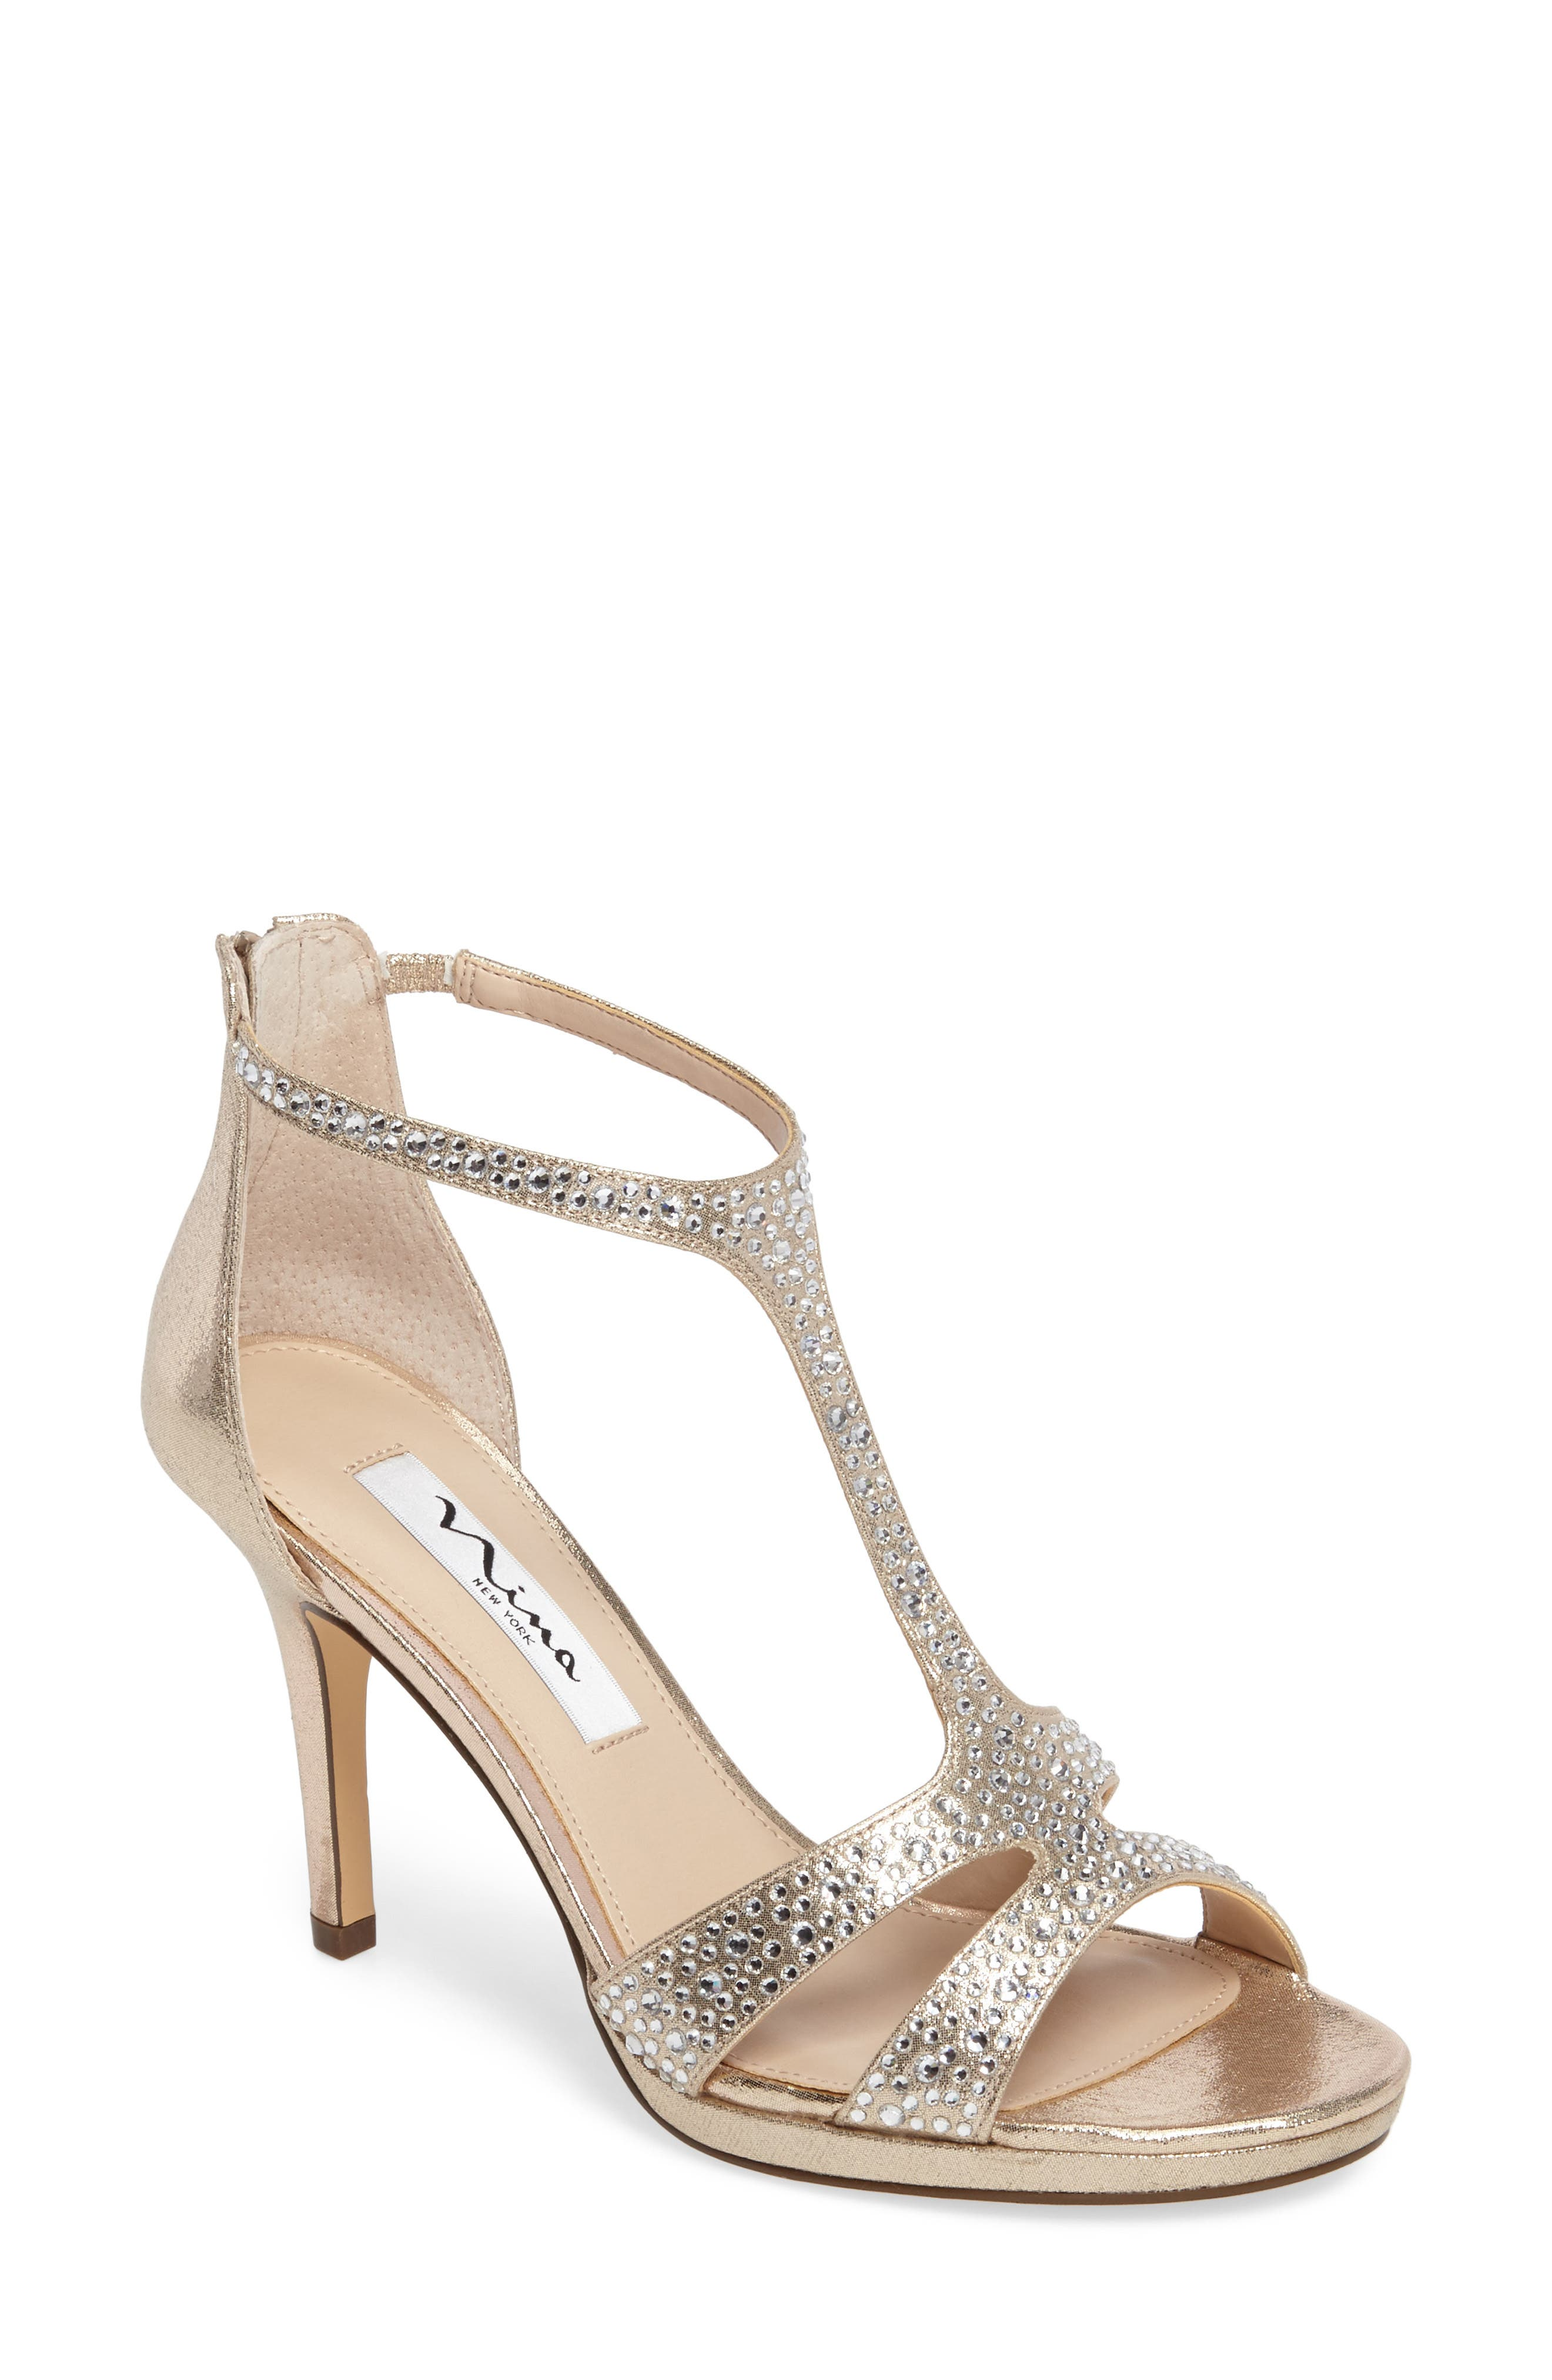 Brietta Embellished T-Strap Sandal,                         Main,                         color, TAUPE FABRIC